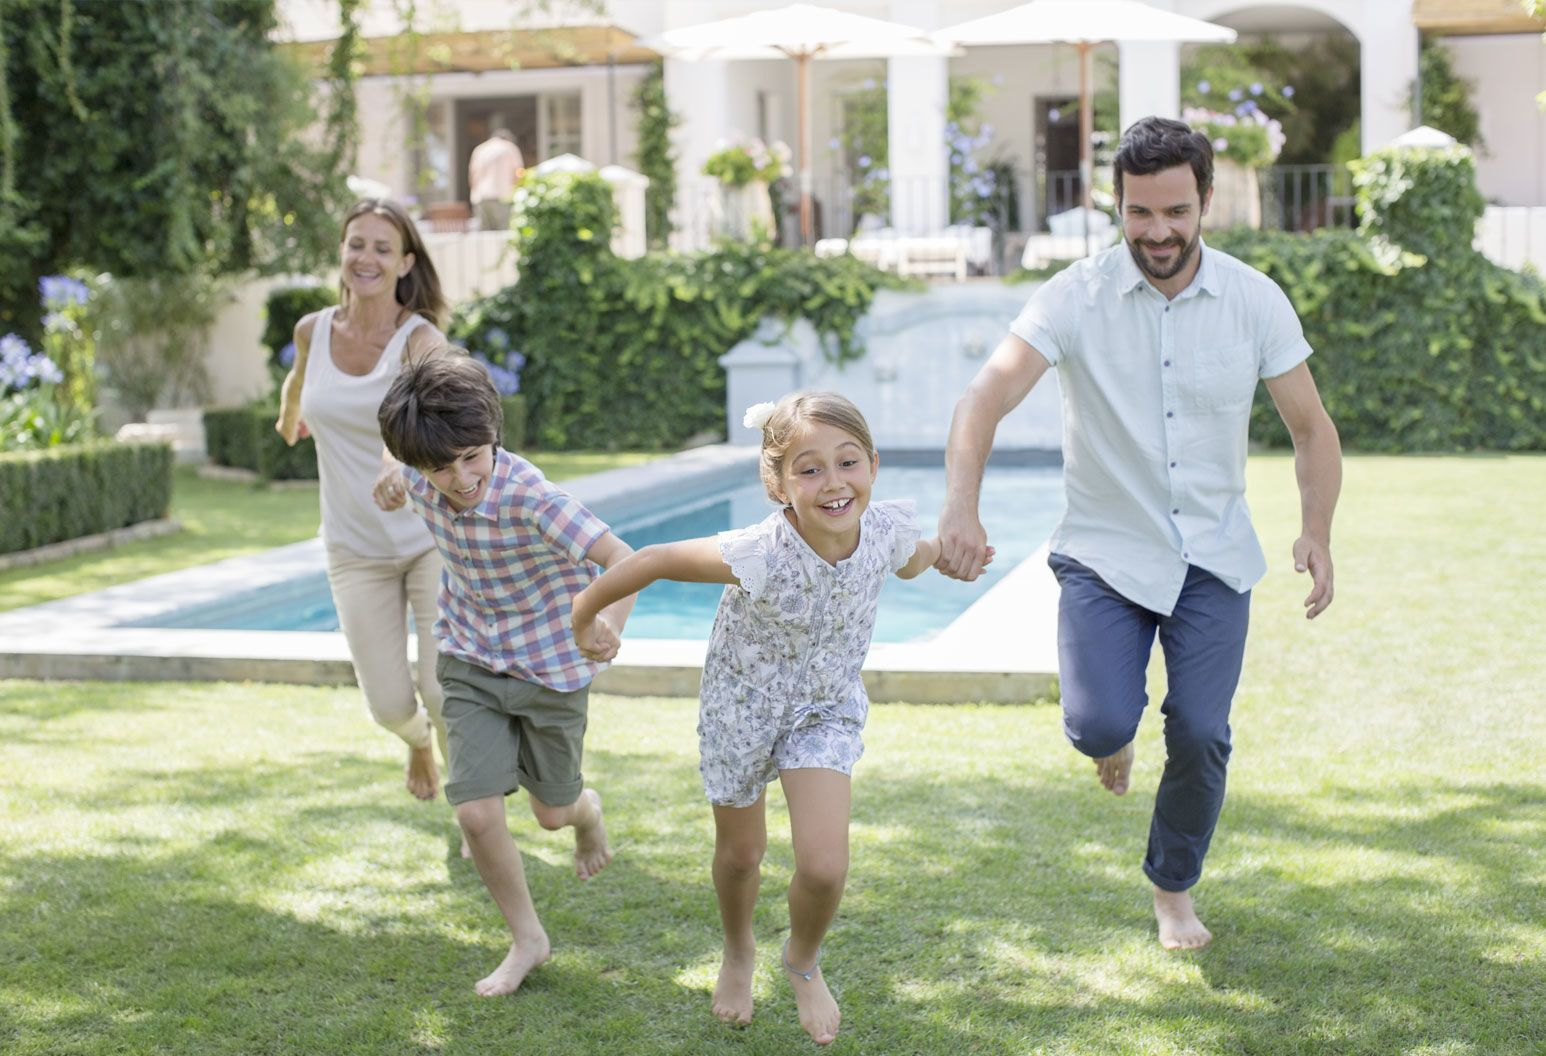 A mom, dad and two young kids hold hands and run together. They are in a backyard with a pool behind them. They're all barefoot and smiling.